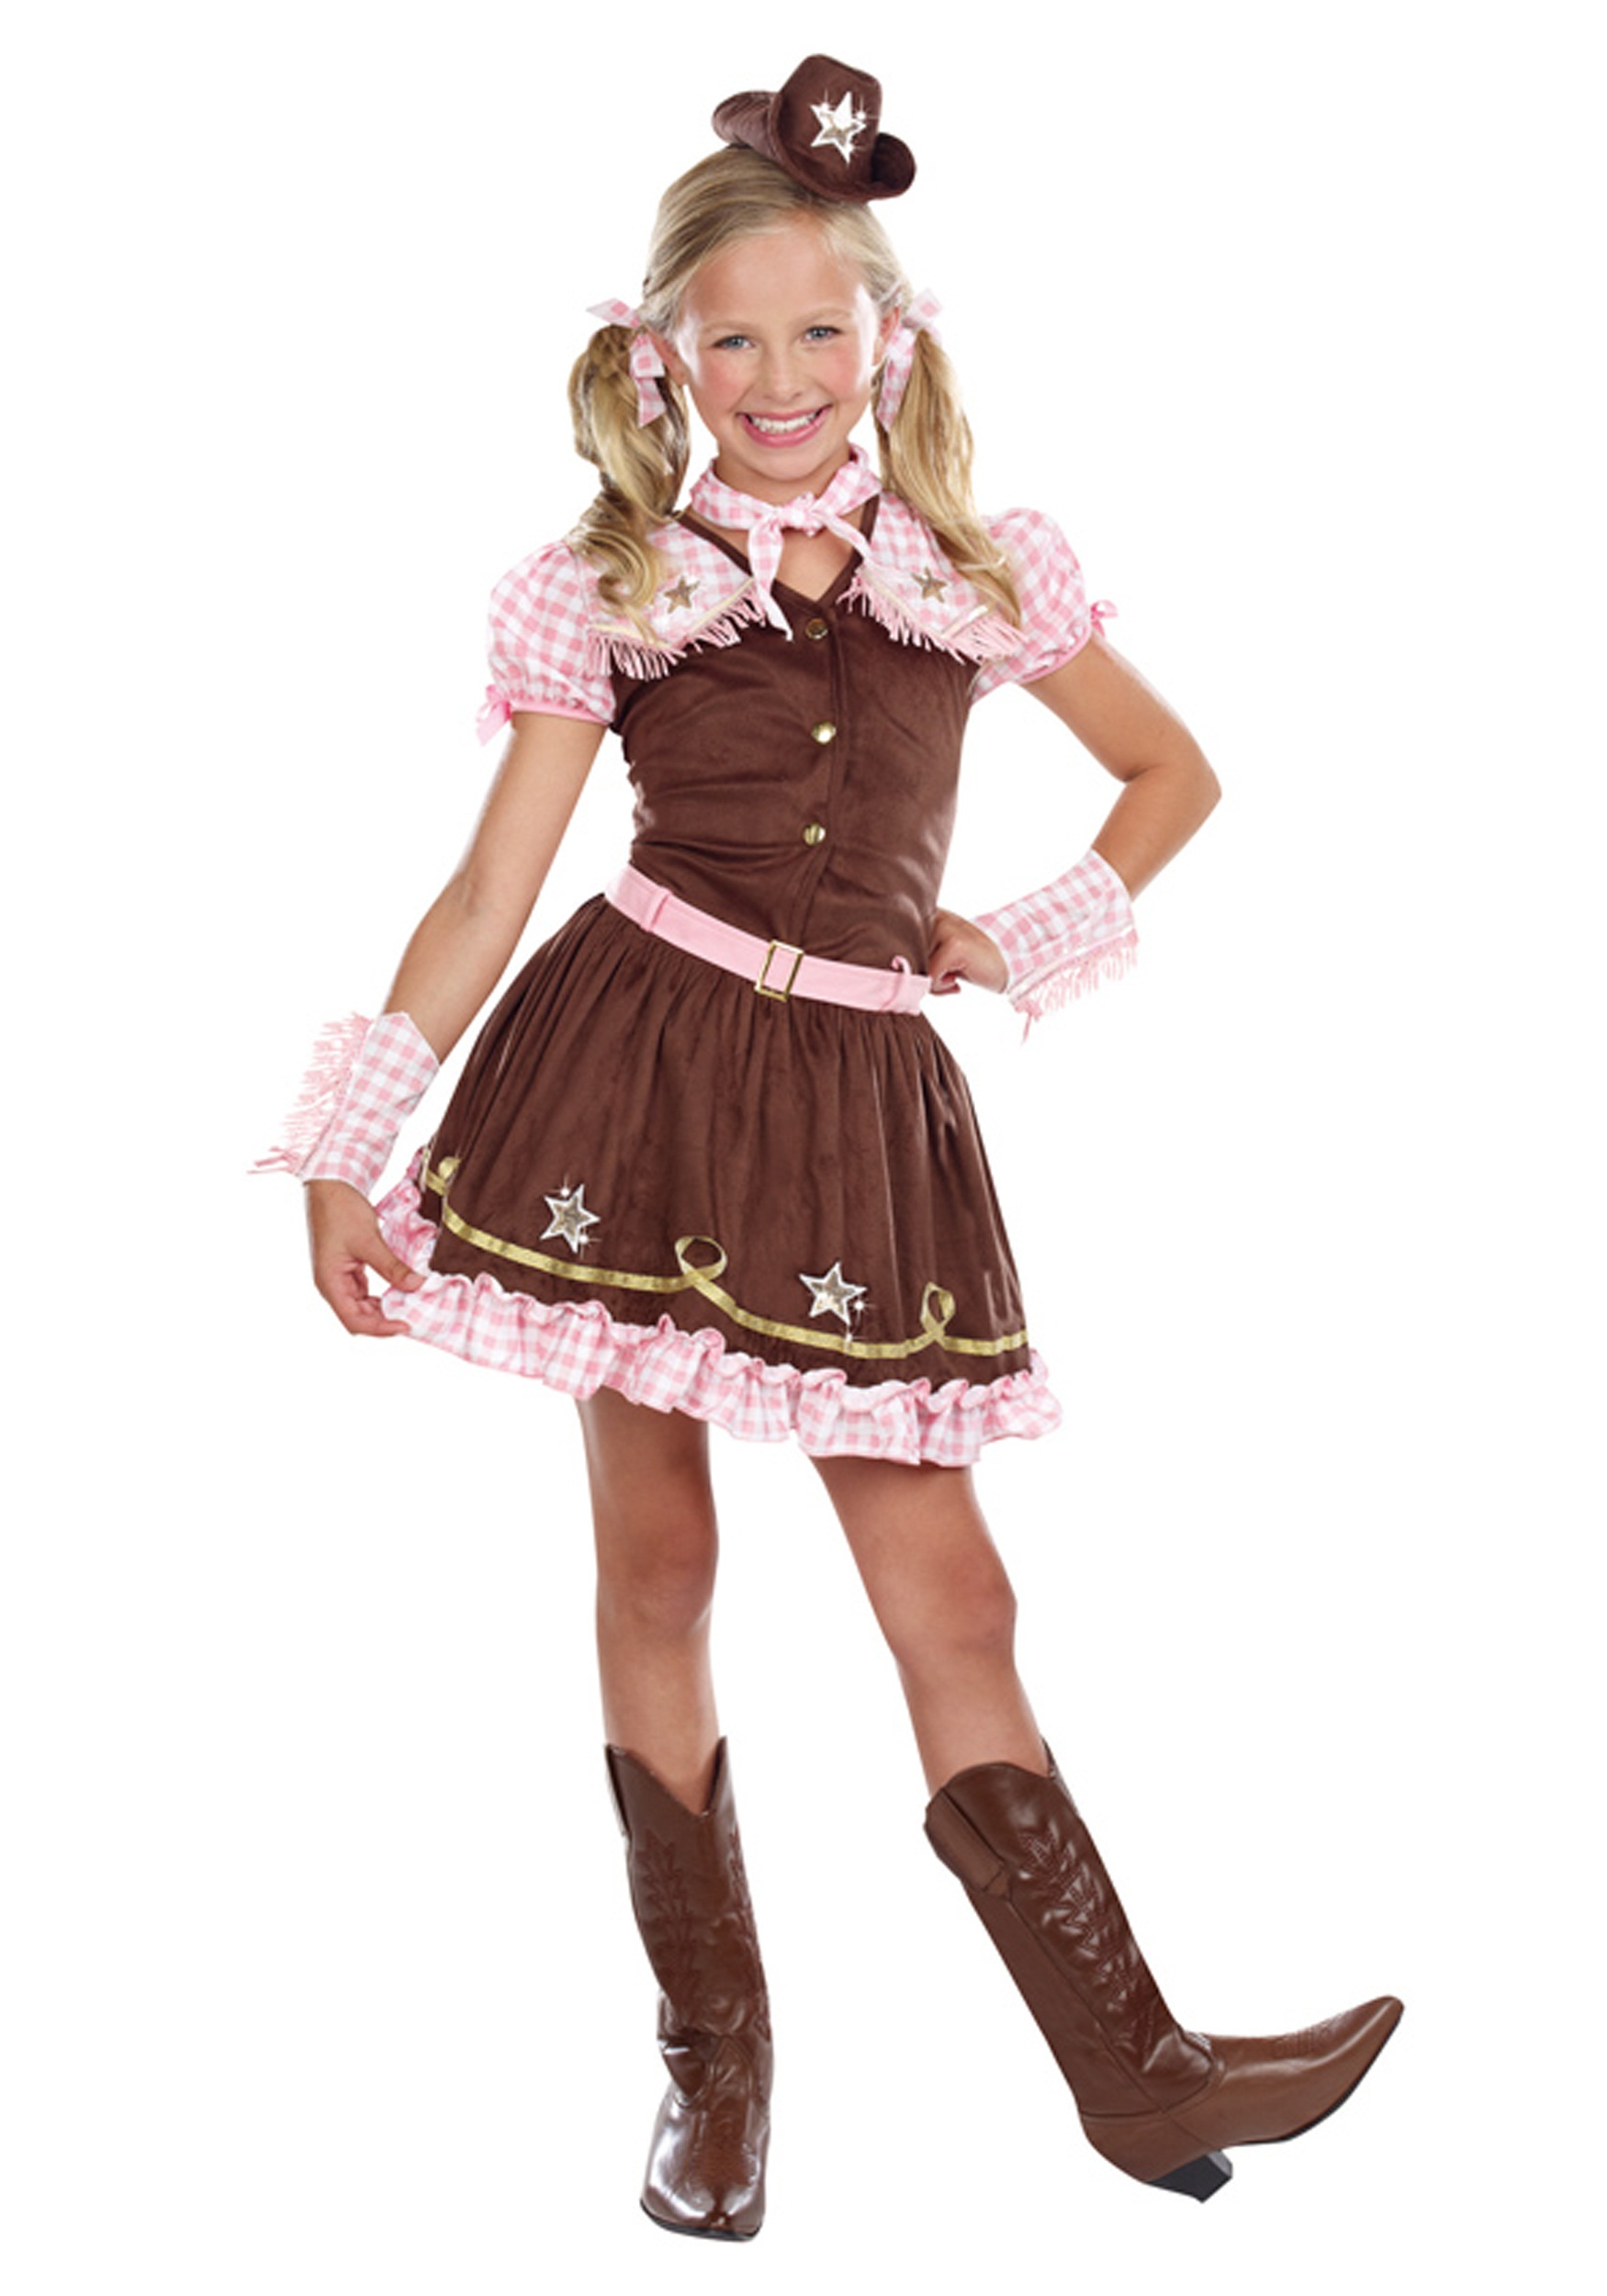 Cowboy costume for girls - photo#5